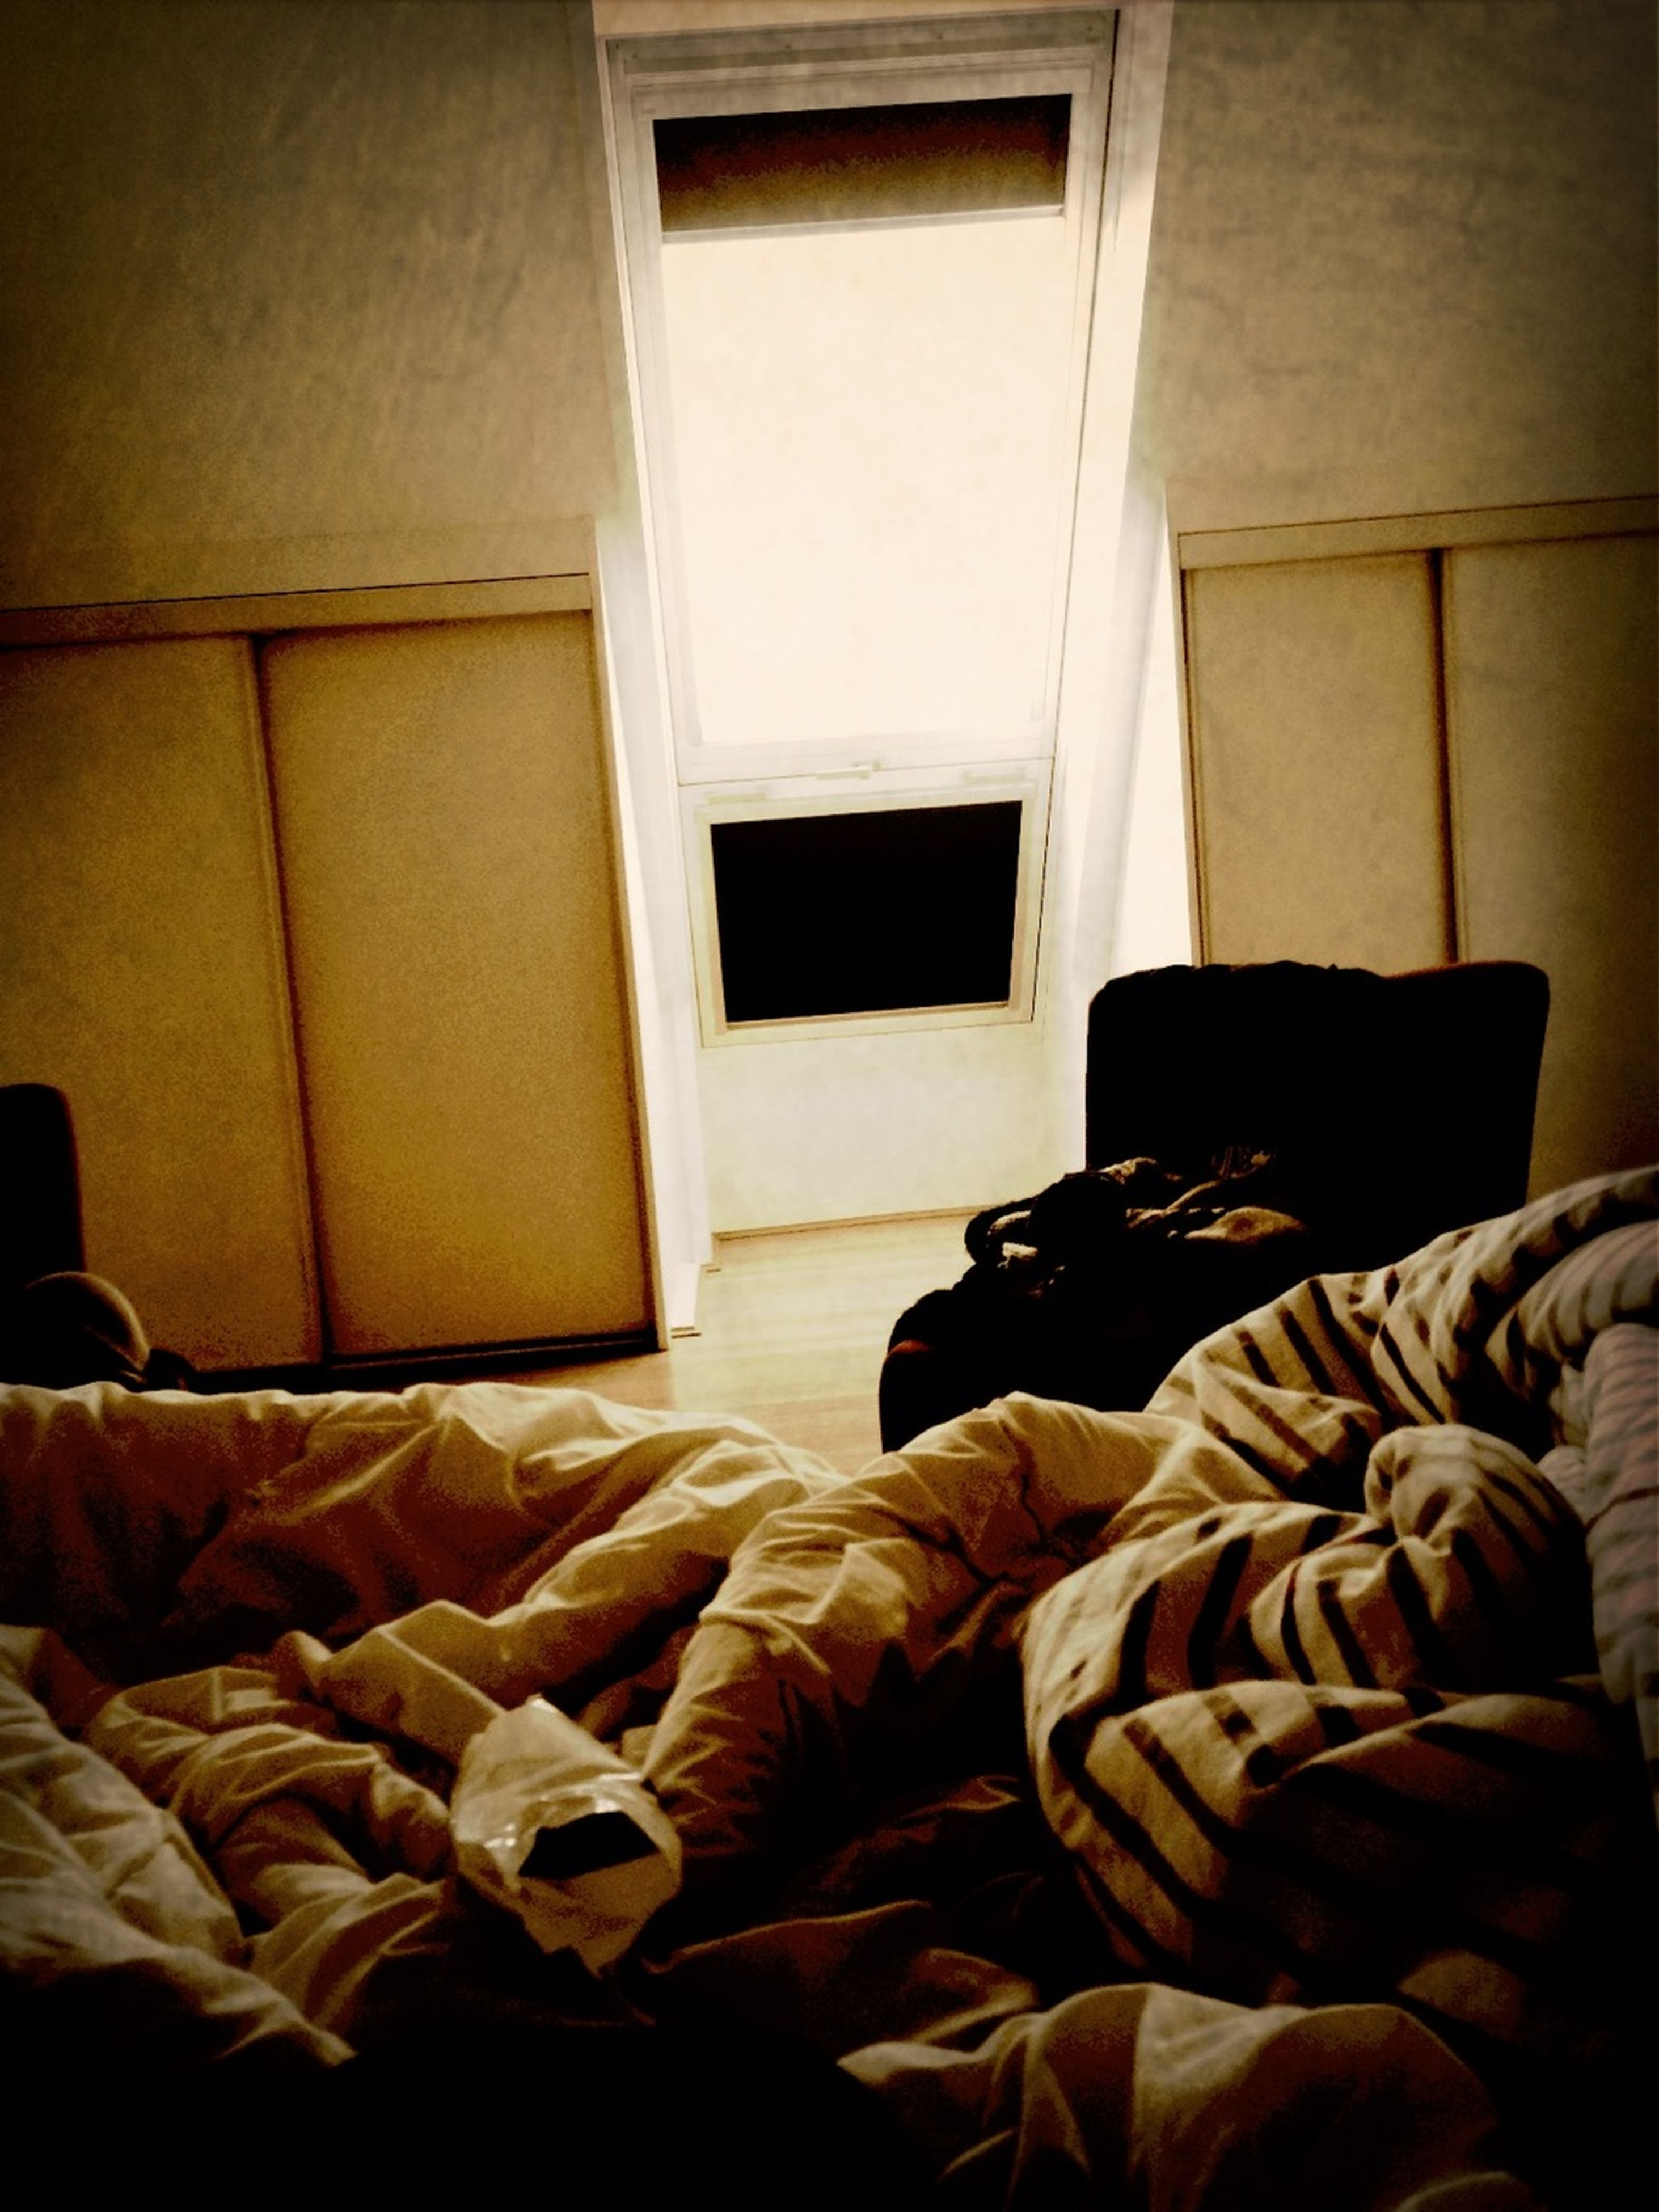 indoors, home interior, bed, window, sofa, bedroom, absence, house, domestic room, furniture, pillow, chair, architecture, no people, built structure, living room, room, relaxation, wall, day